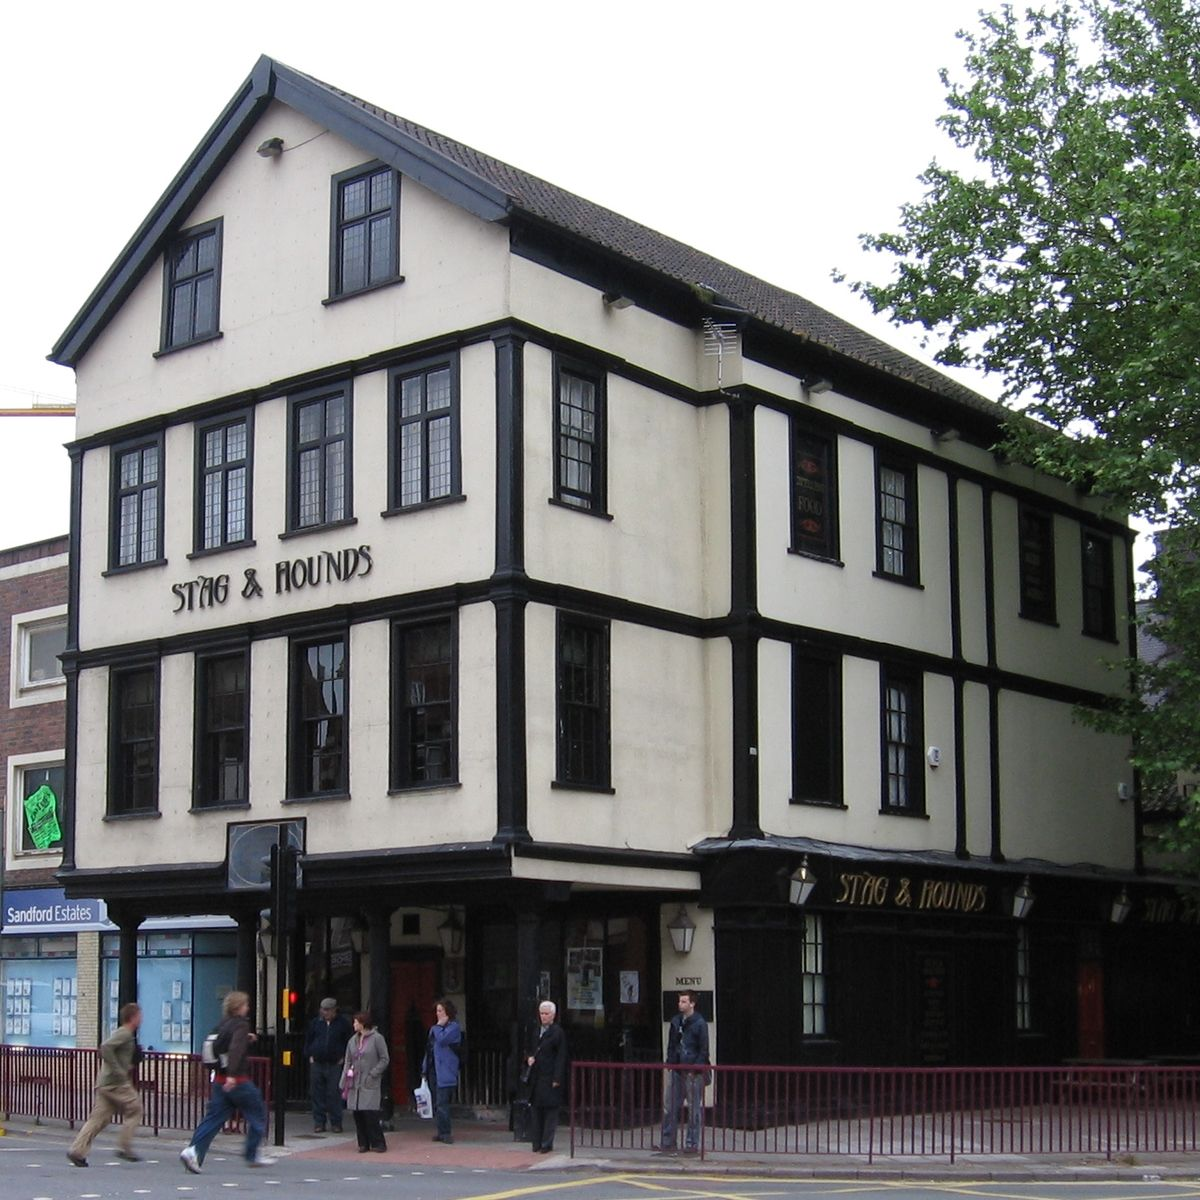 Stag and hounds public house wikipedia for Classic house bristol